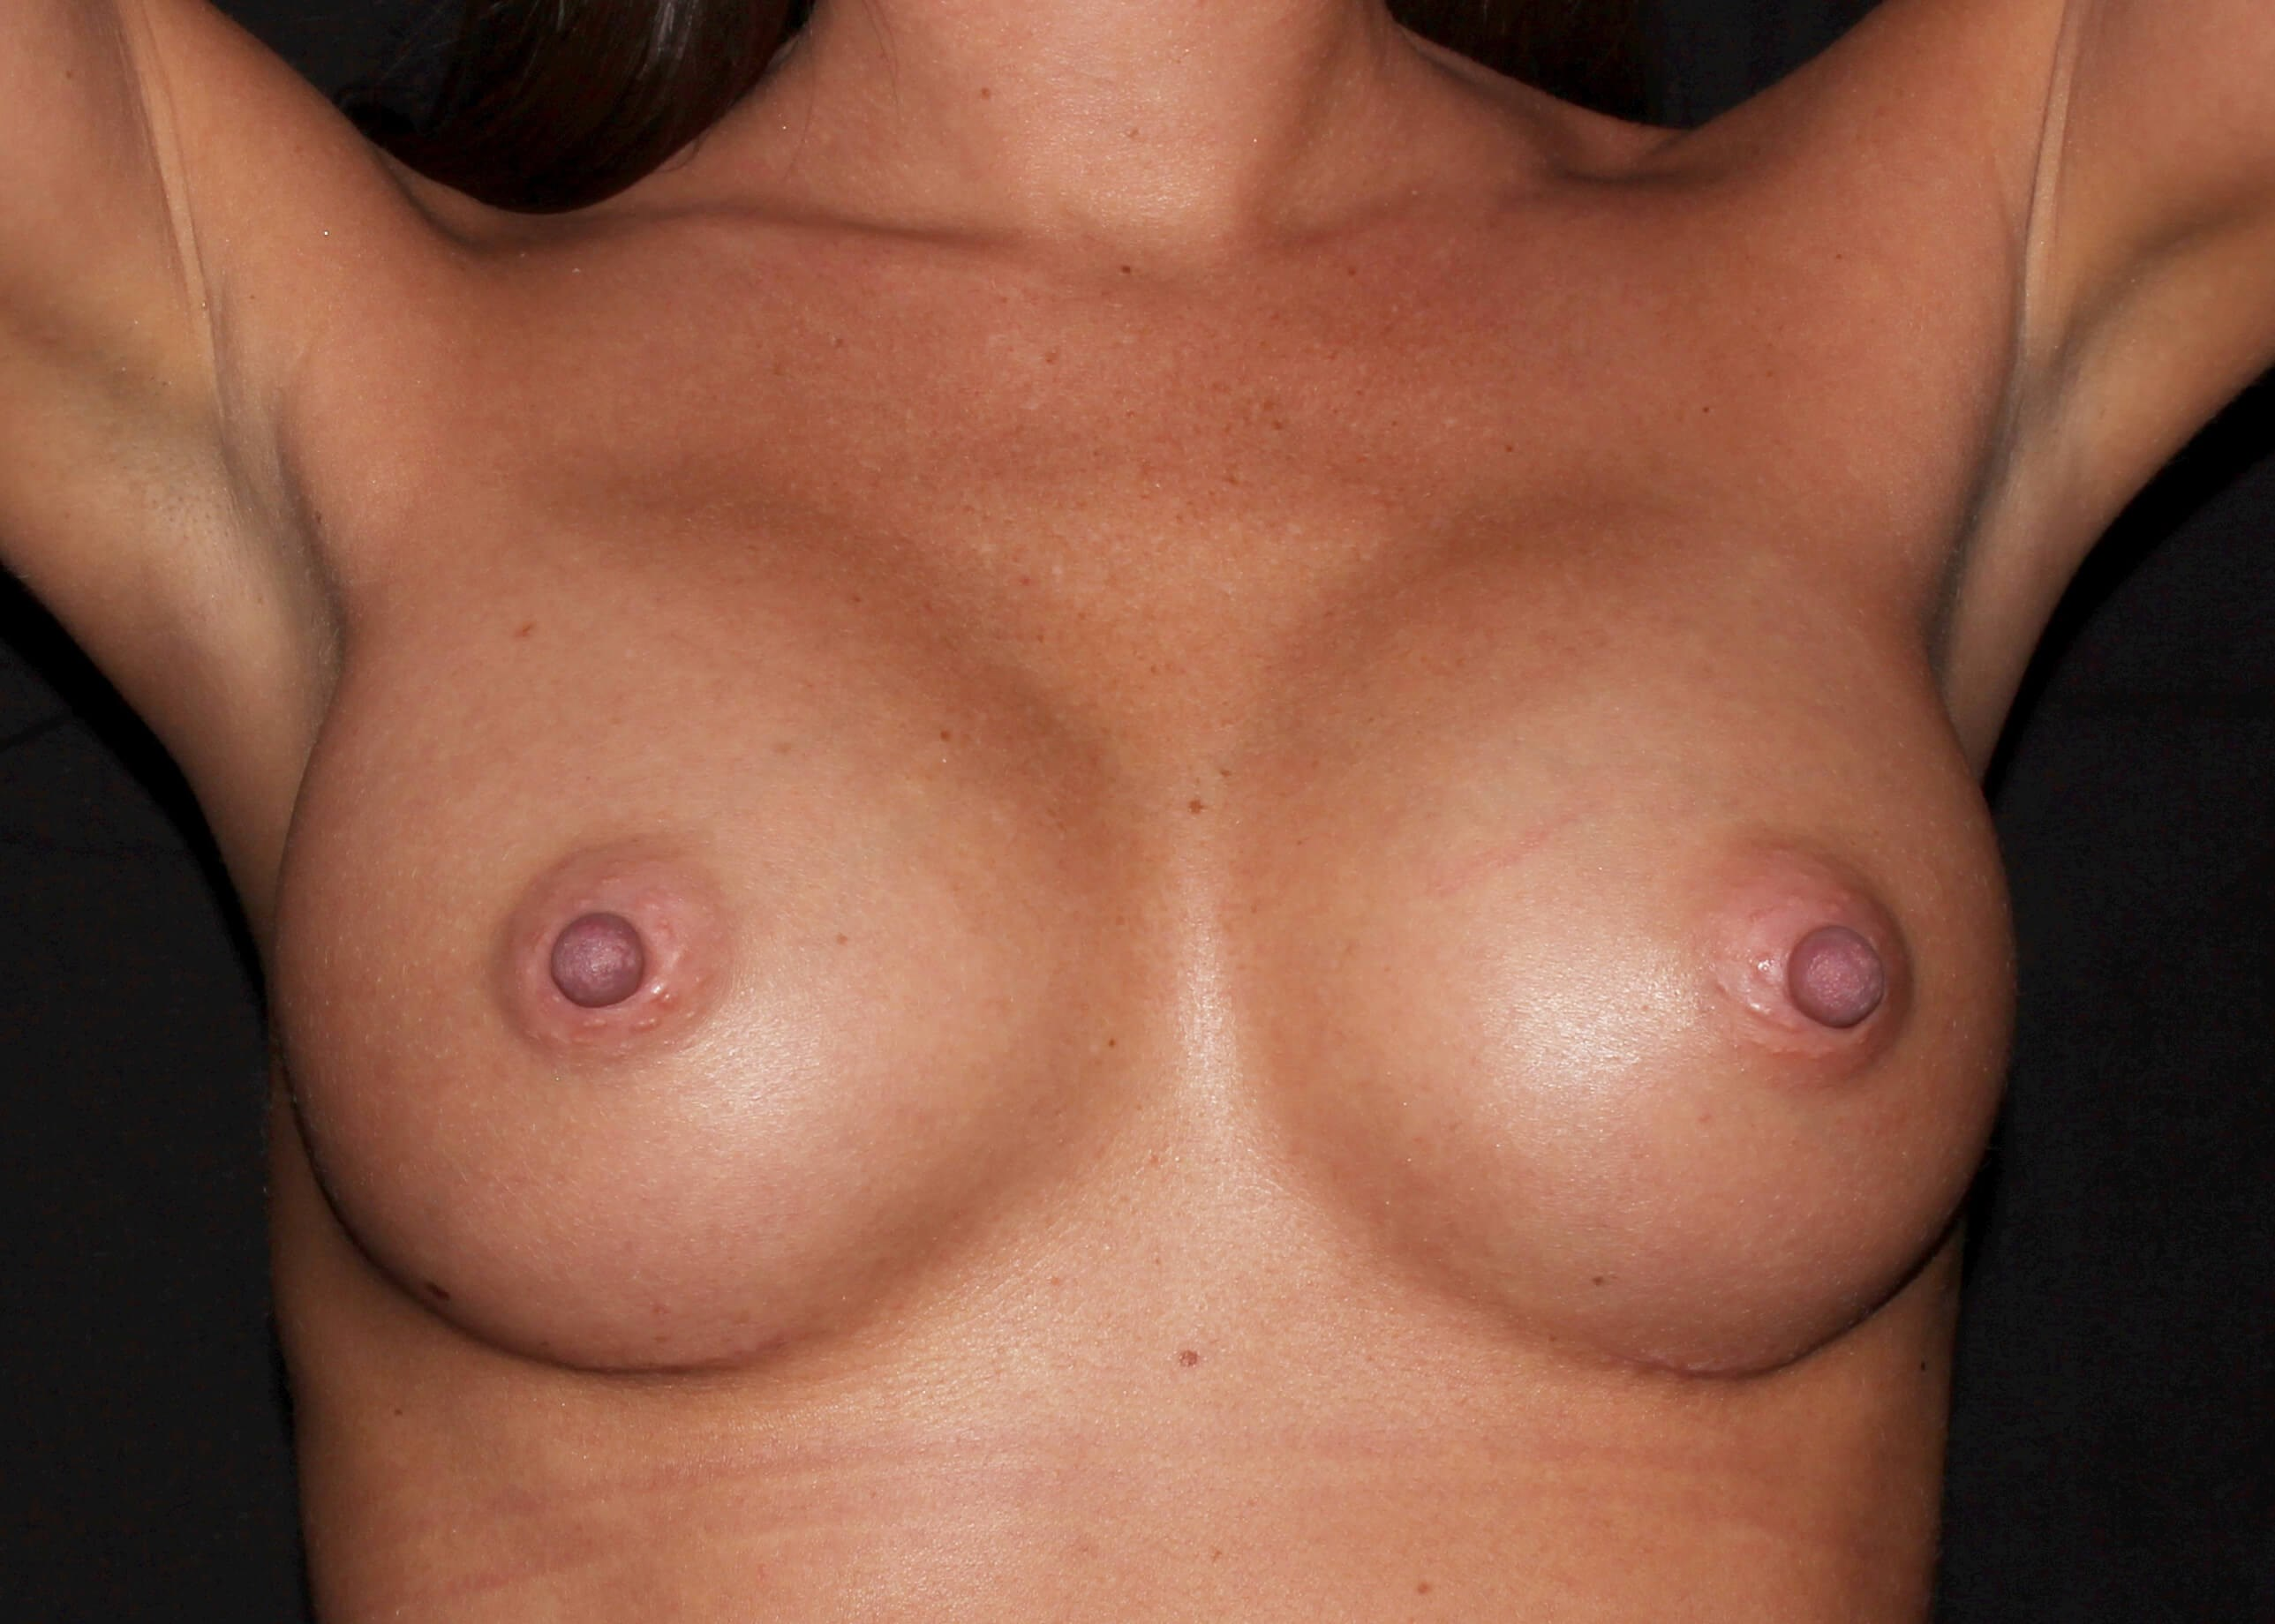 Breast Augmentation After - Breast Augmentation